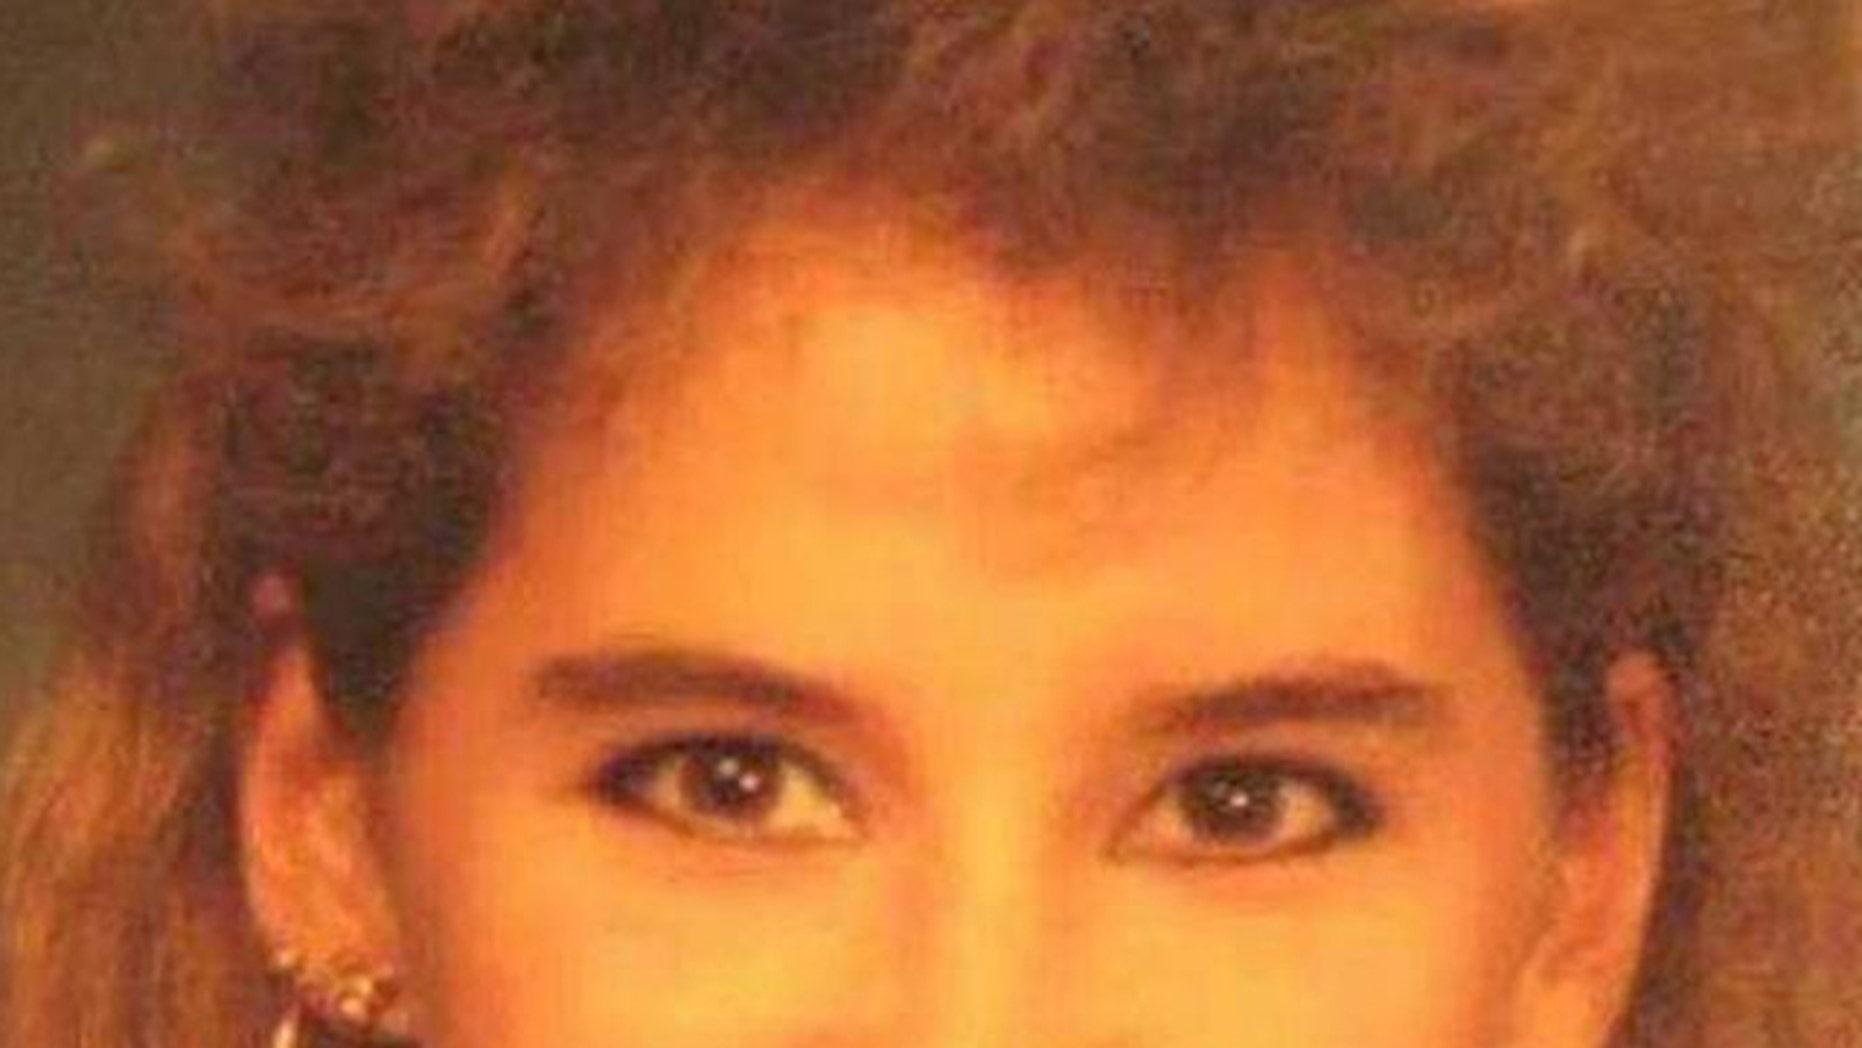 This undated photo shows Sarah DeLeon, who was murdered on Dec. 29, 1989